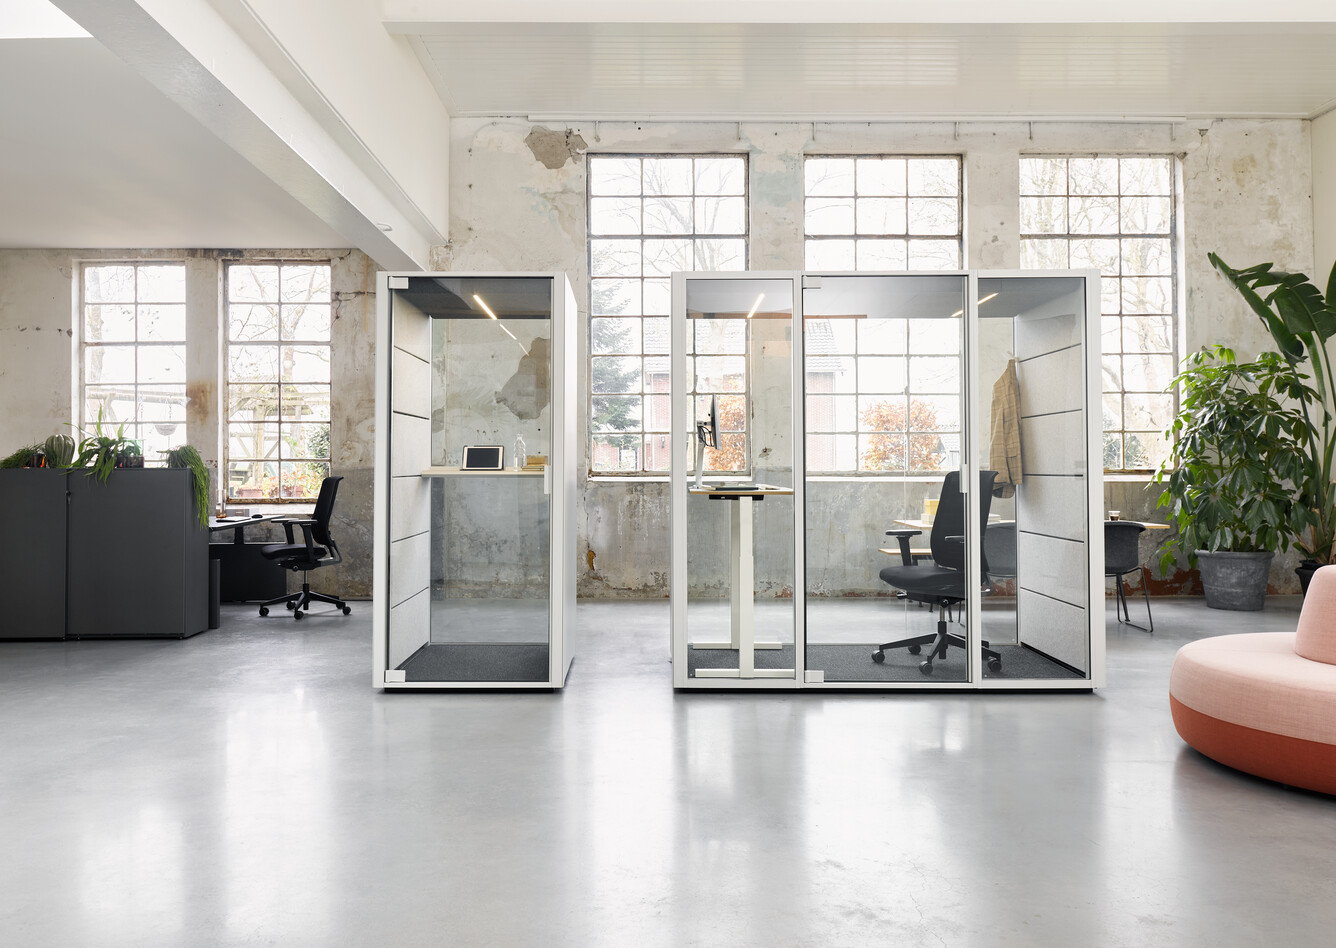 Ahrend Qabin booth and space in space with Ease office chair and white stand desk with Balance SDK Recharge and Well in a Hybrid working community setting